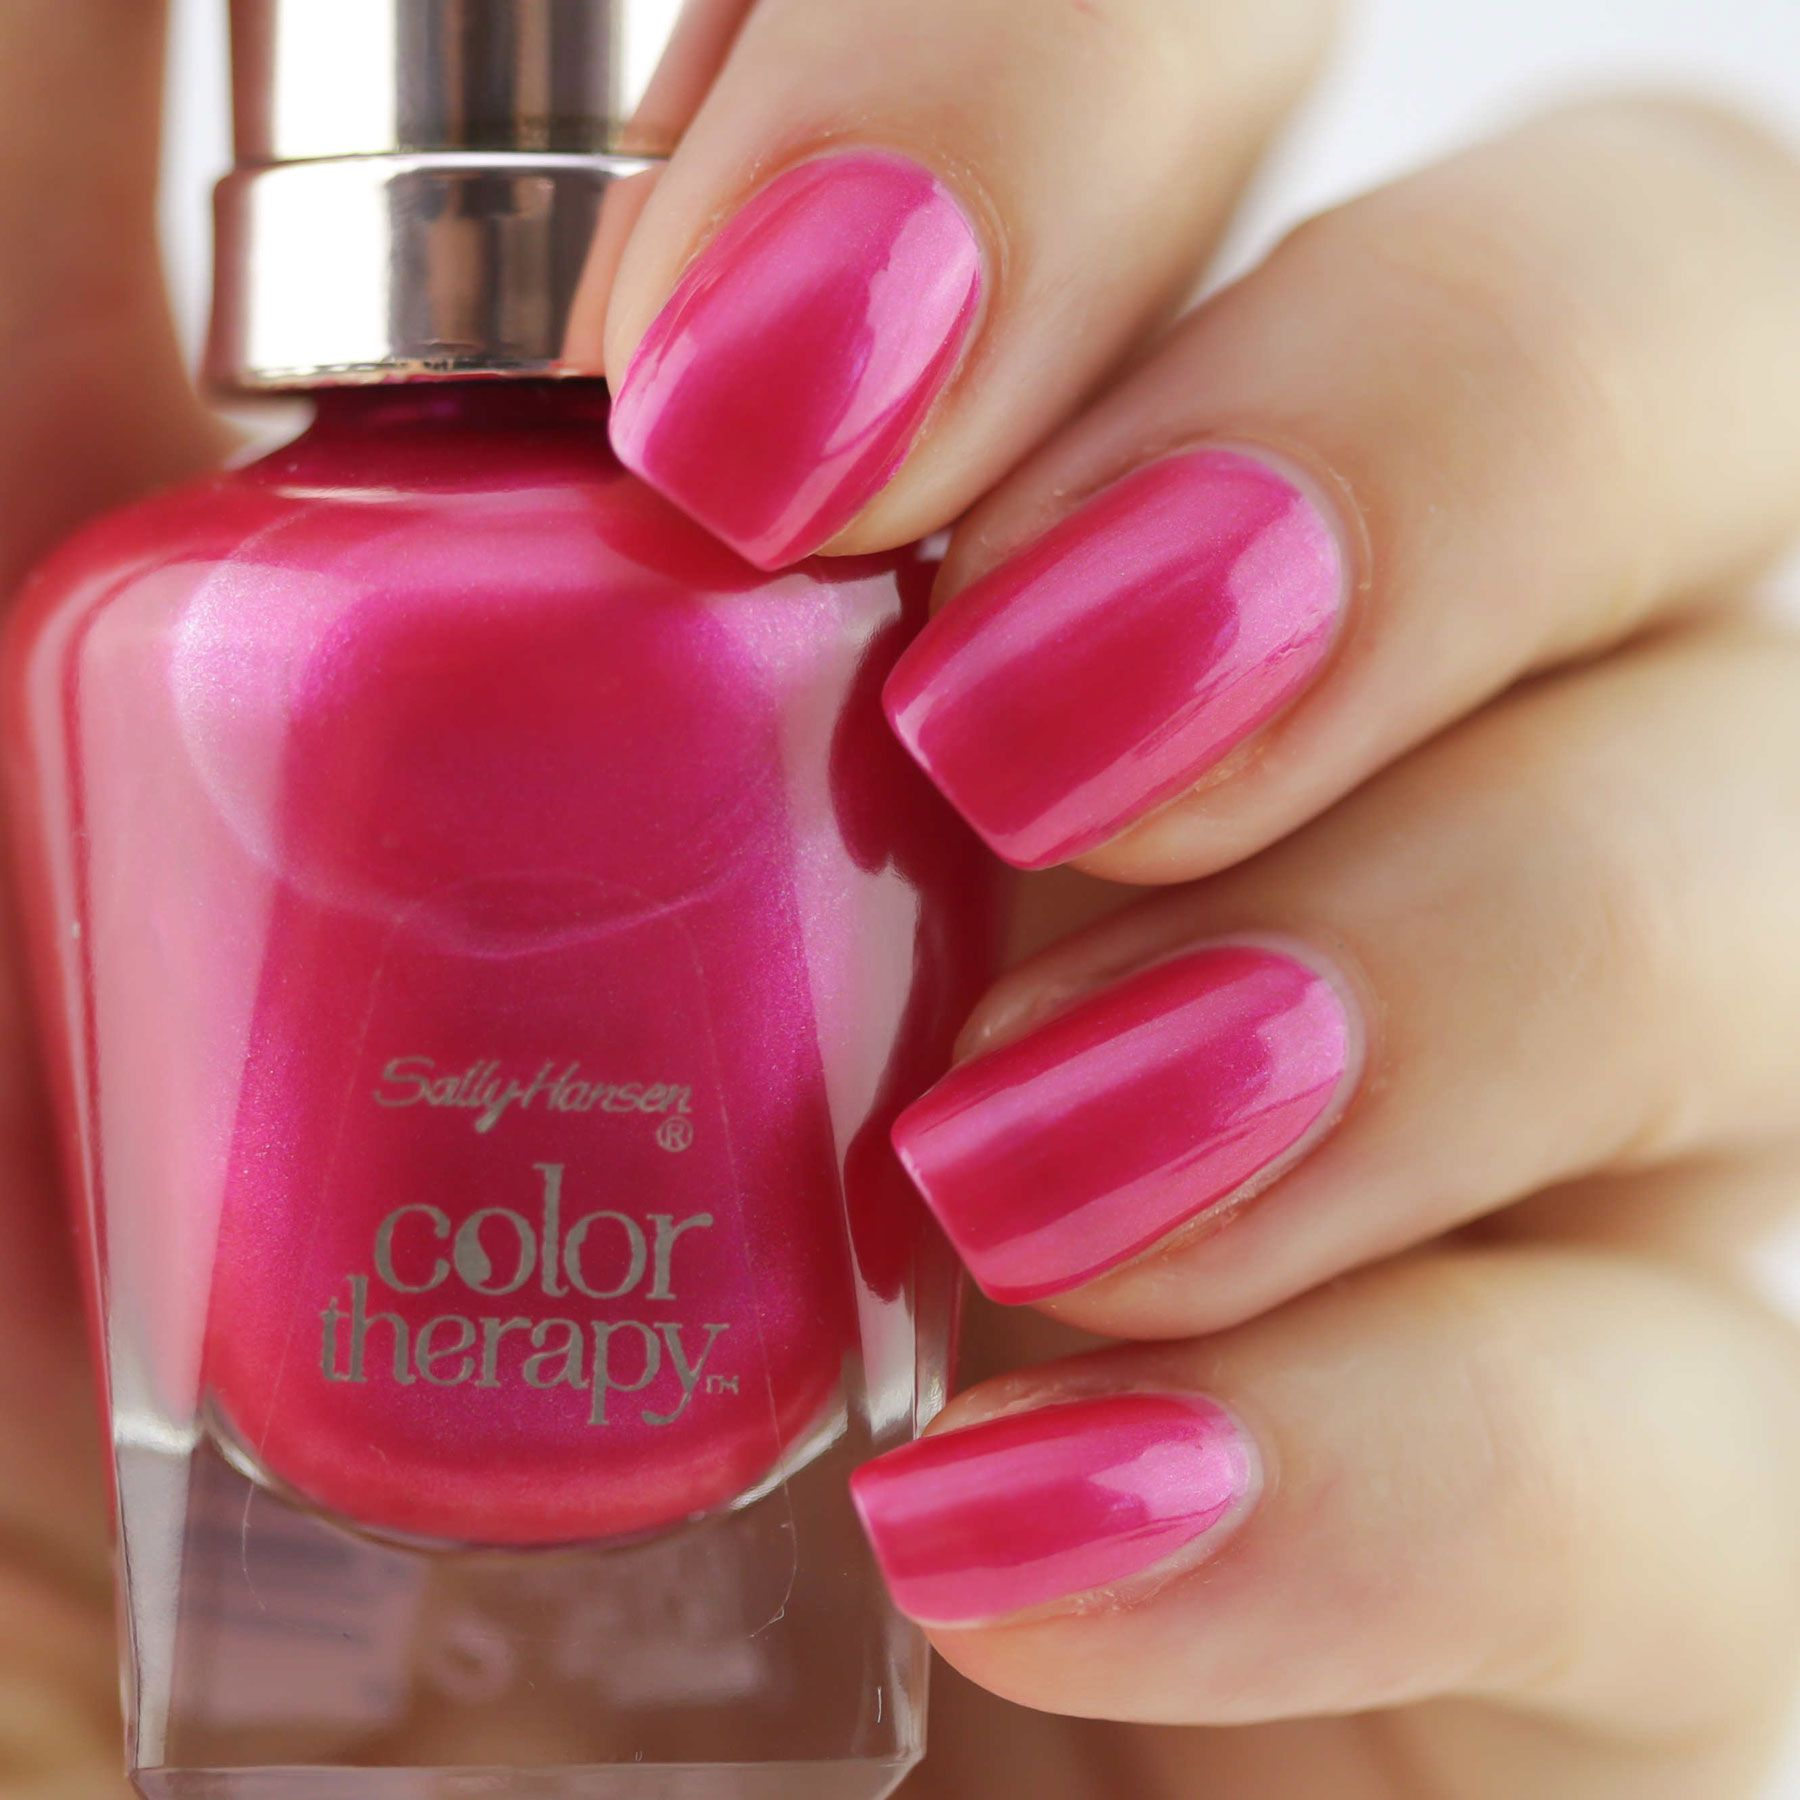 Colour therapy for beauty - Sally Hansen Color Therapy Nail Polish In Rosy Glow